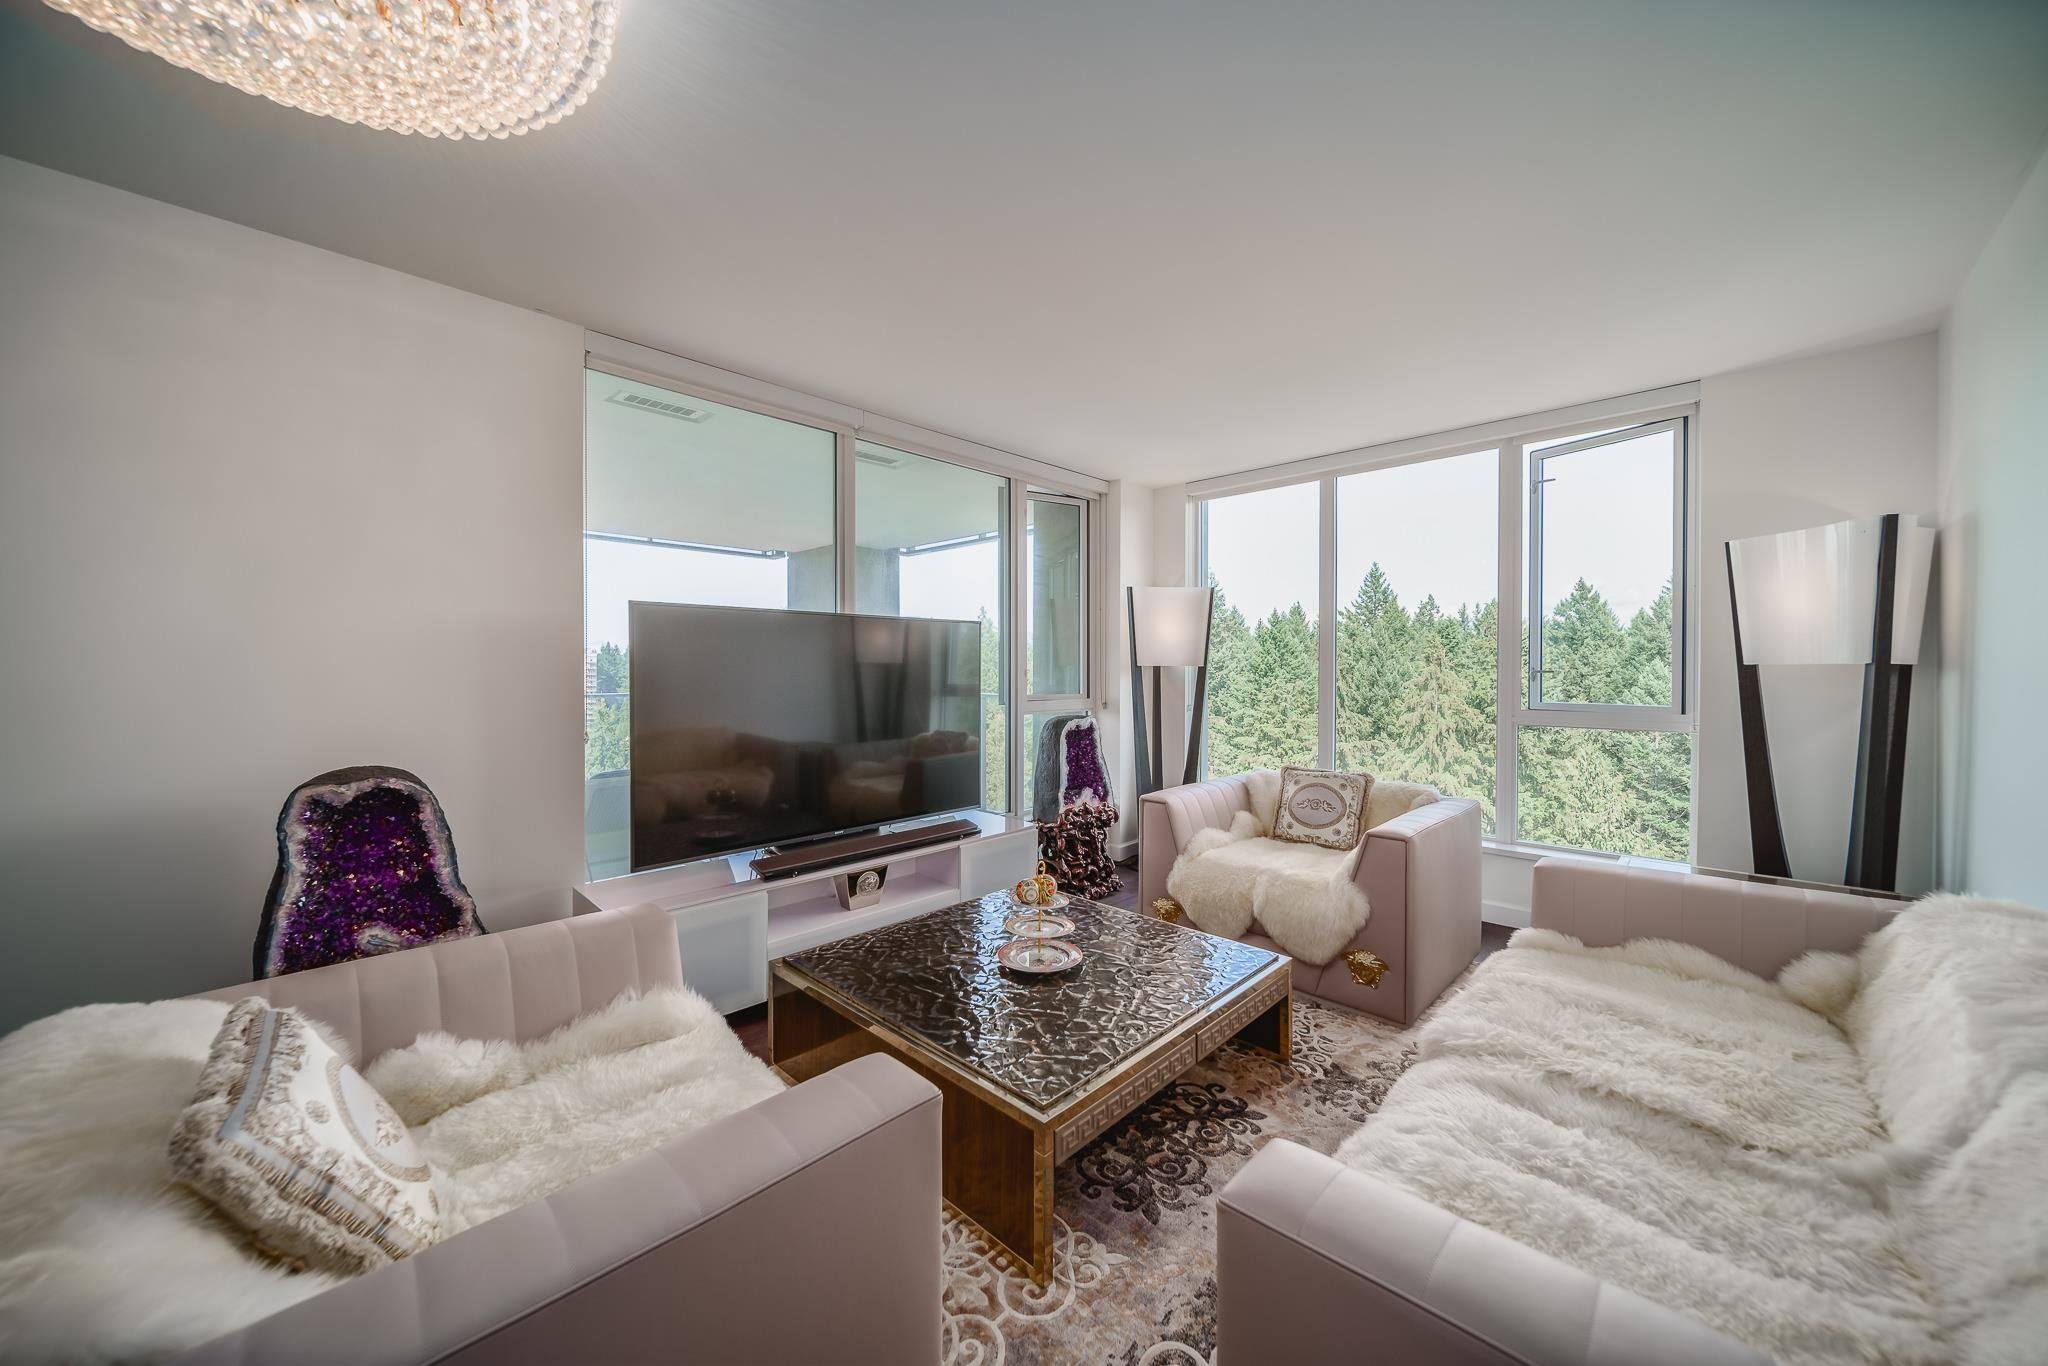 """Main Photo: 2105 3355 BINNING Road in Vancouver: University VW Condo for sale in """"Binning Tower"""" (Vancouver West)  : MLS®# R2611409"""